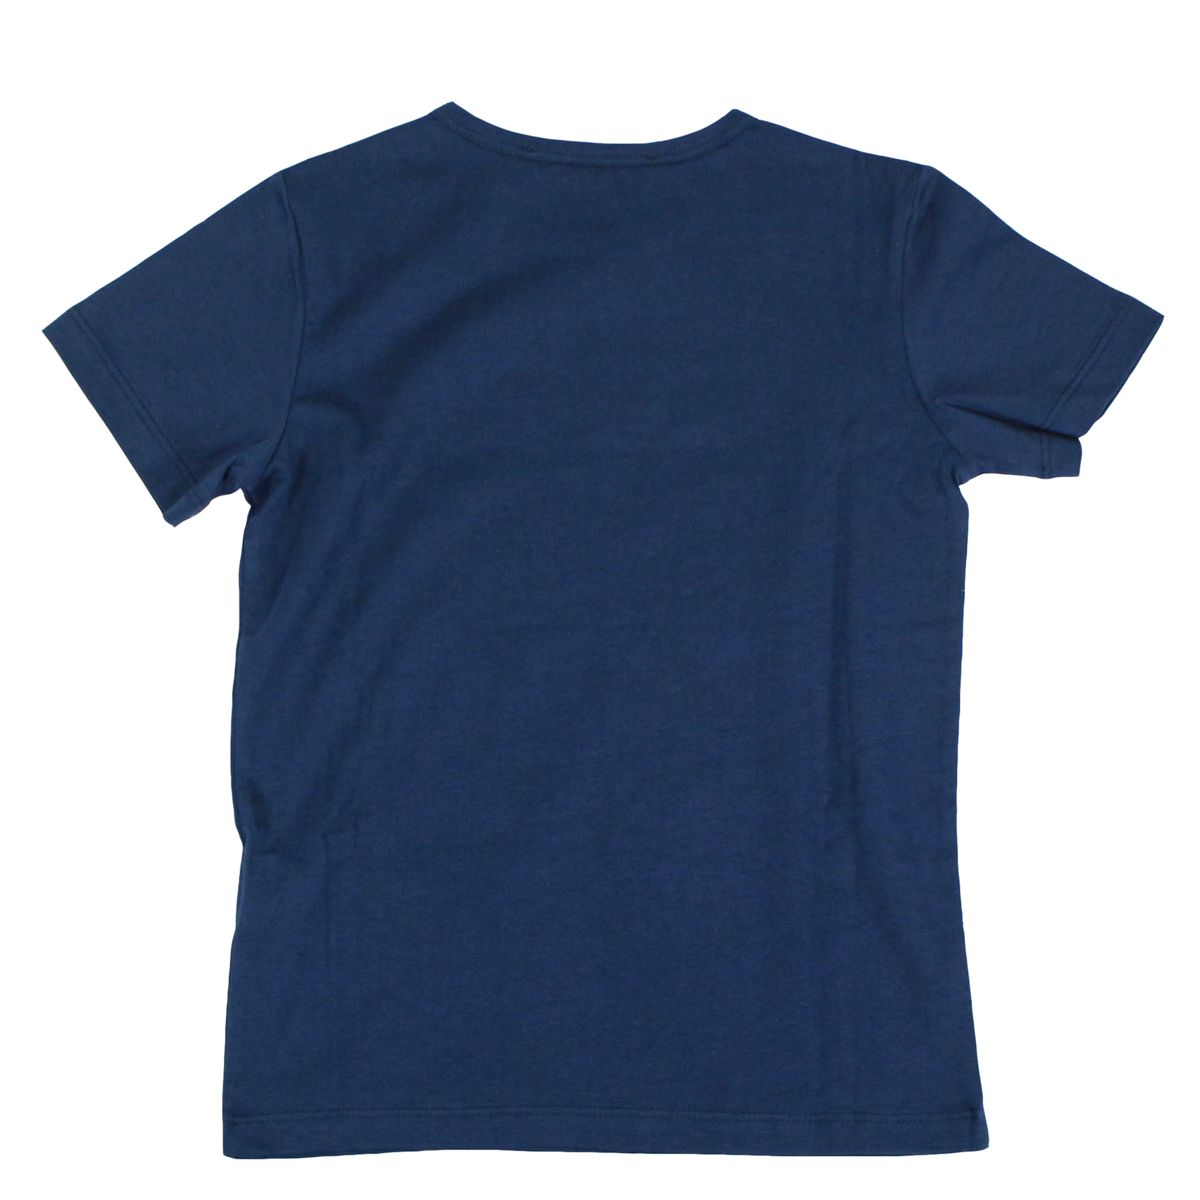 T-shirt with front logo print Blue Bikkembergs